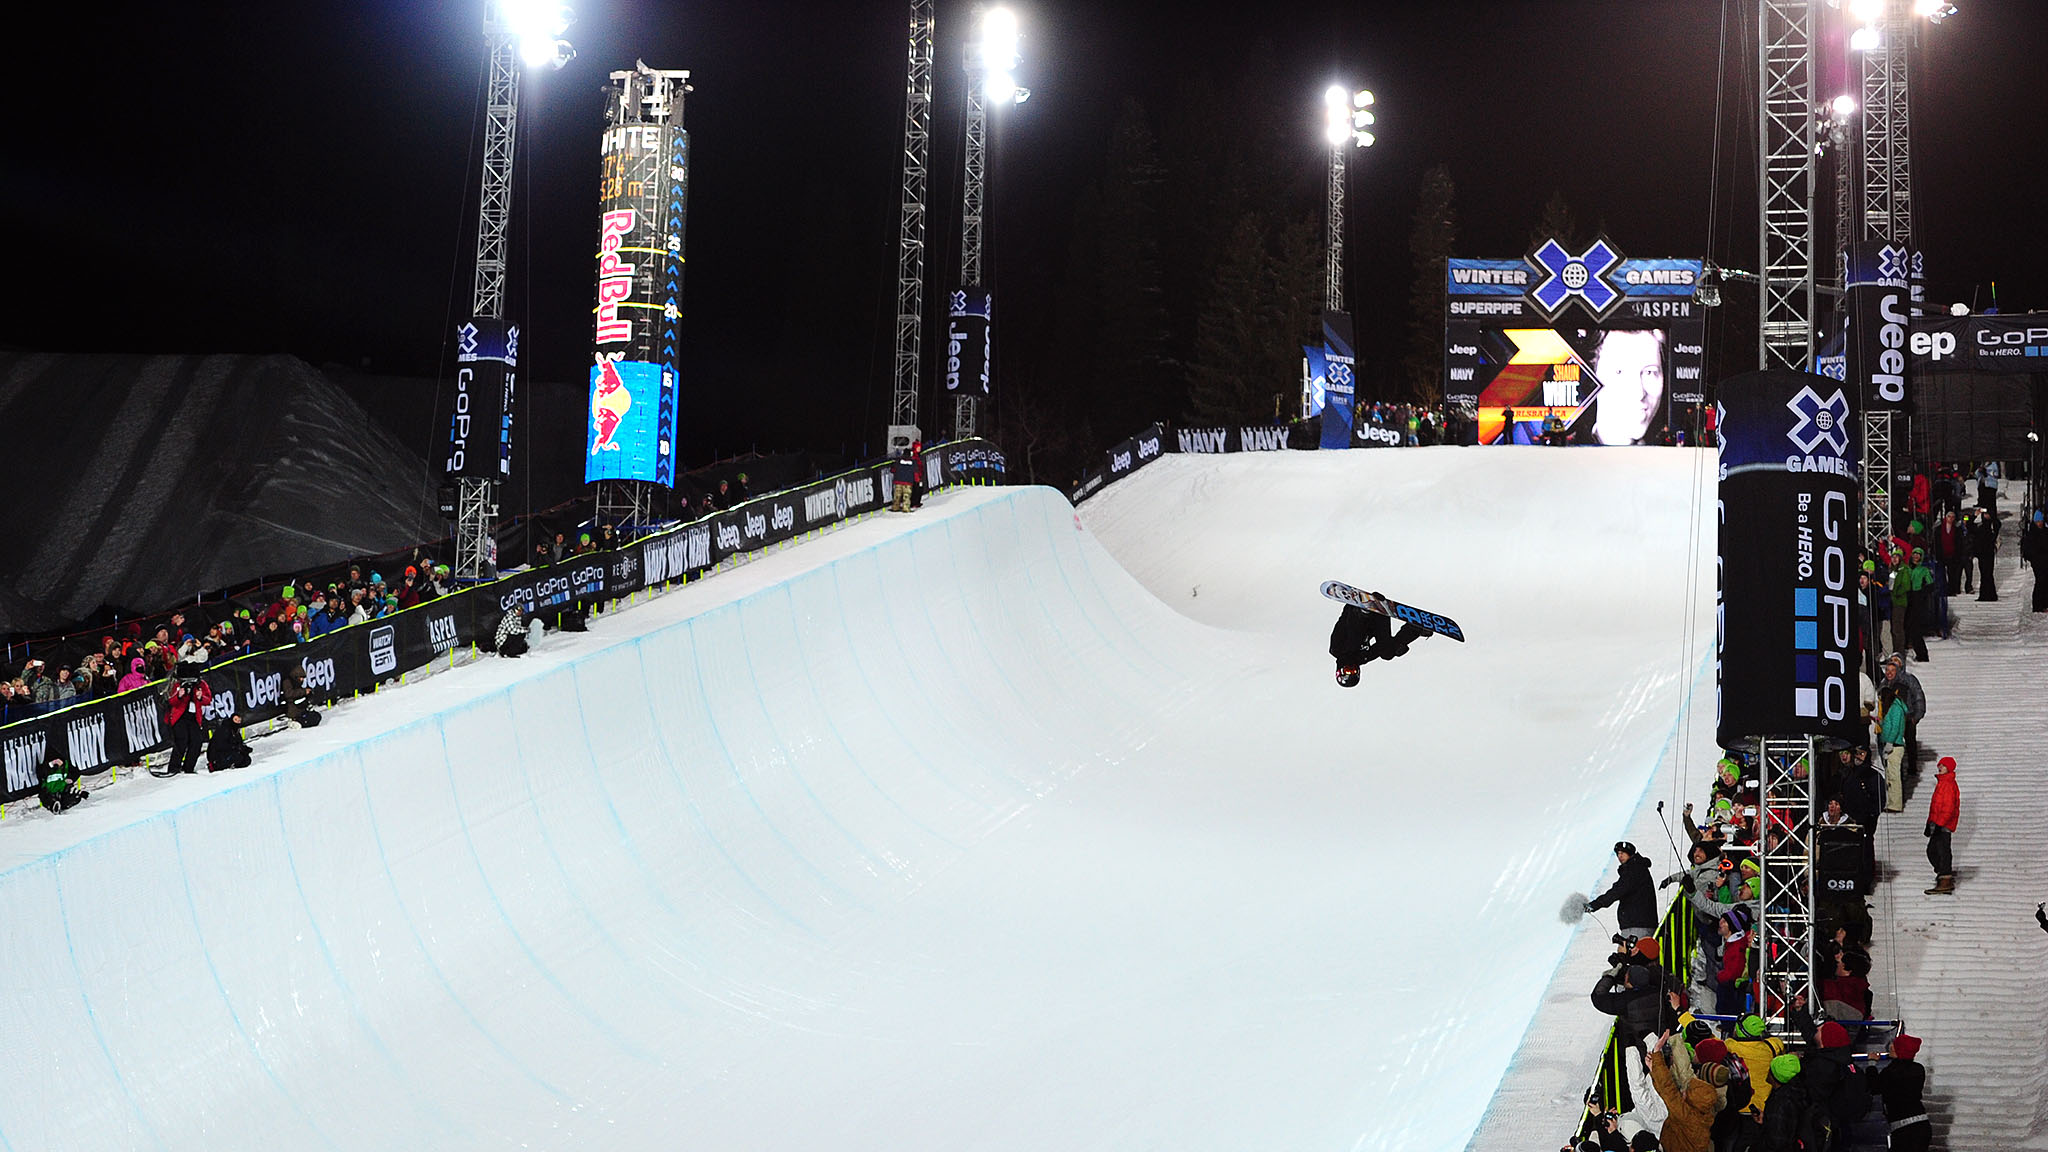 Shaun White cruised to a sixth straight SuperPipe win at X Games Aspen 2013, notching a 98 on his second run.